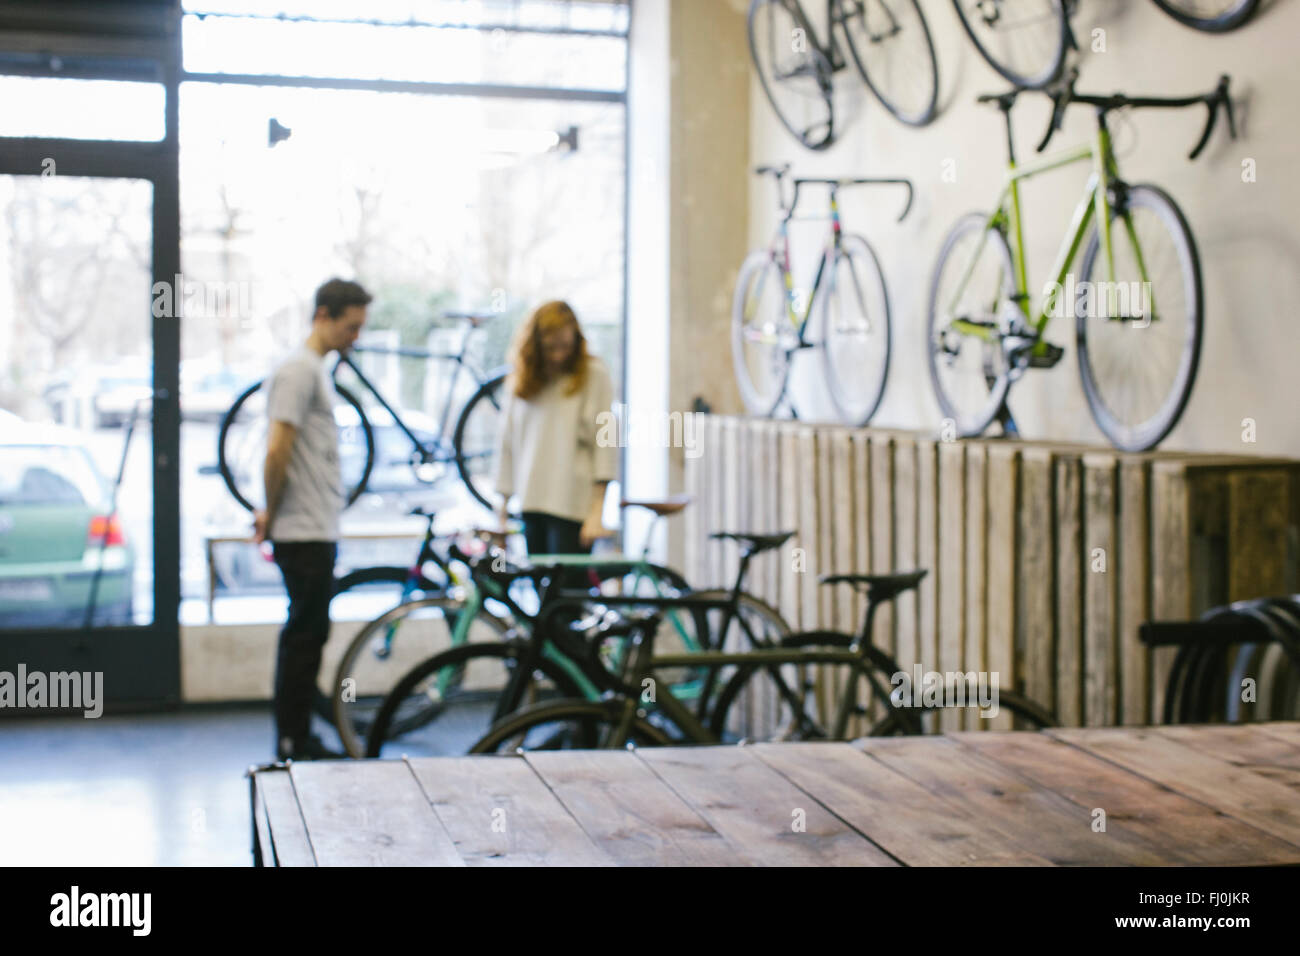 Salesman and client in a custom-made bicycle store - Stock Image